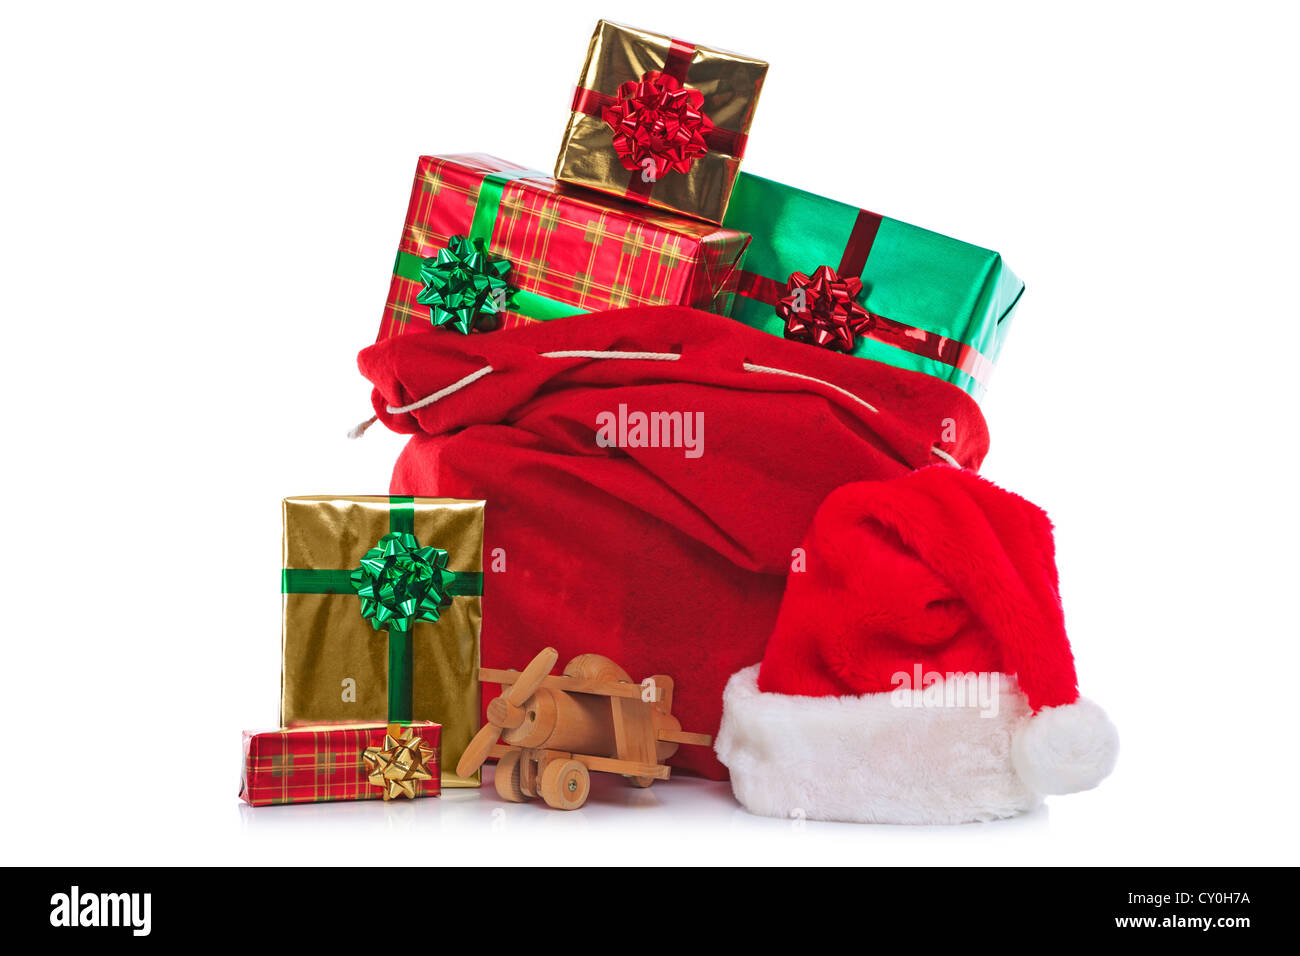 Photo of a red Santa Claus hat and sack full of gift wrapped presents and toys, isolated on a white background. - Stock Image